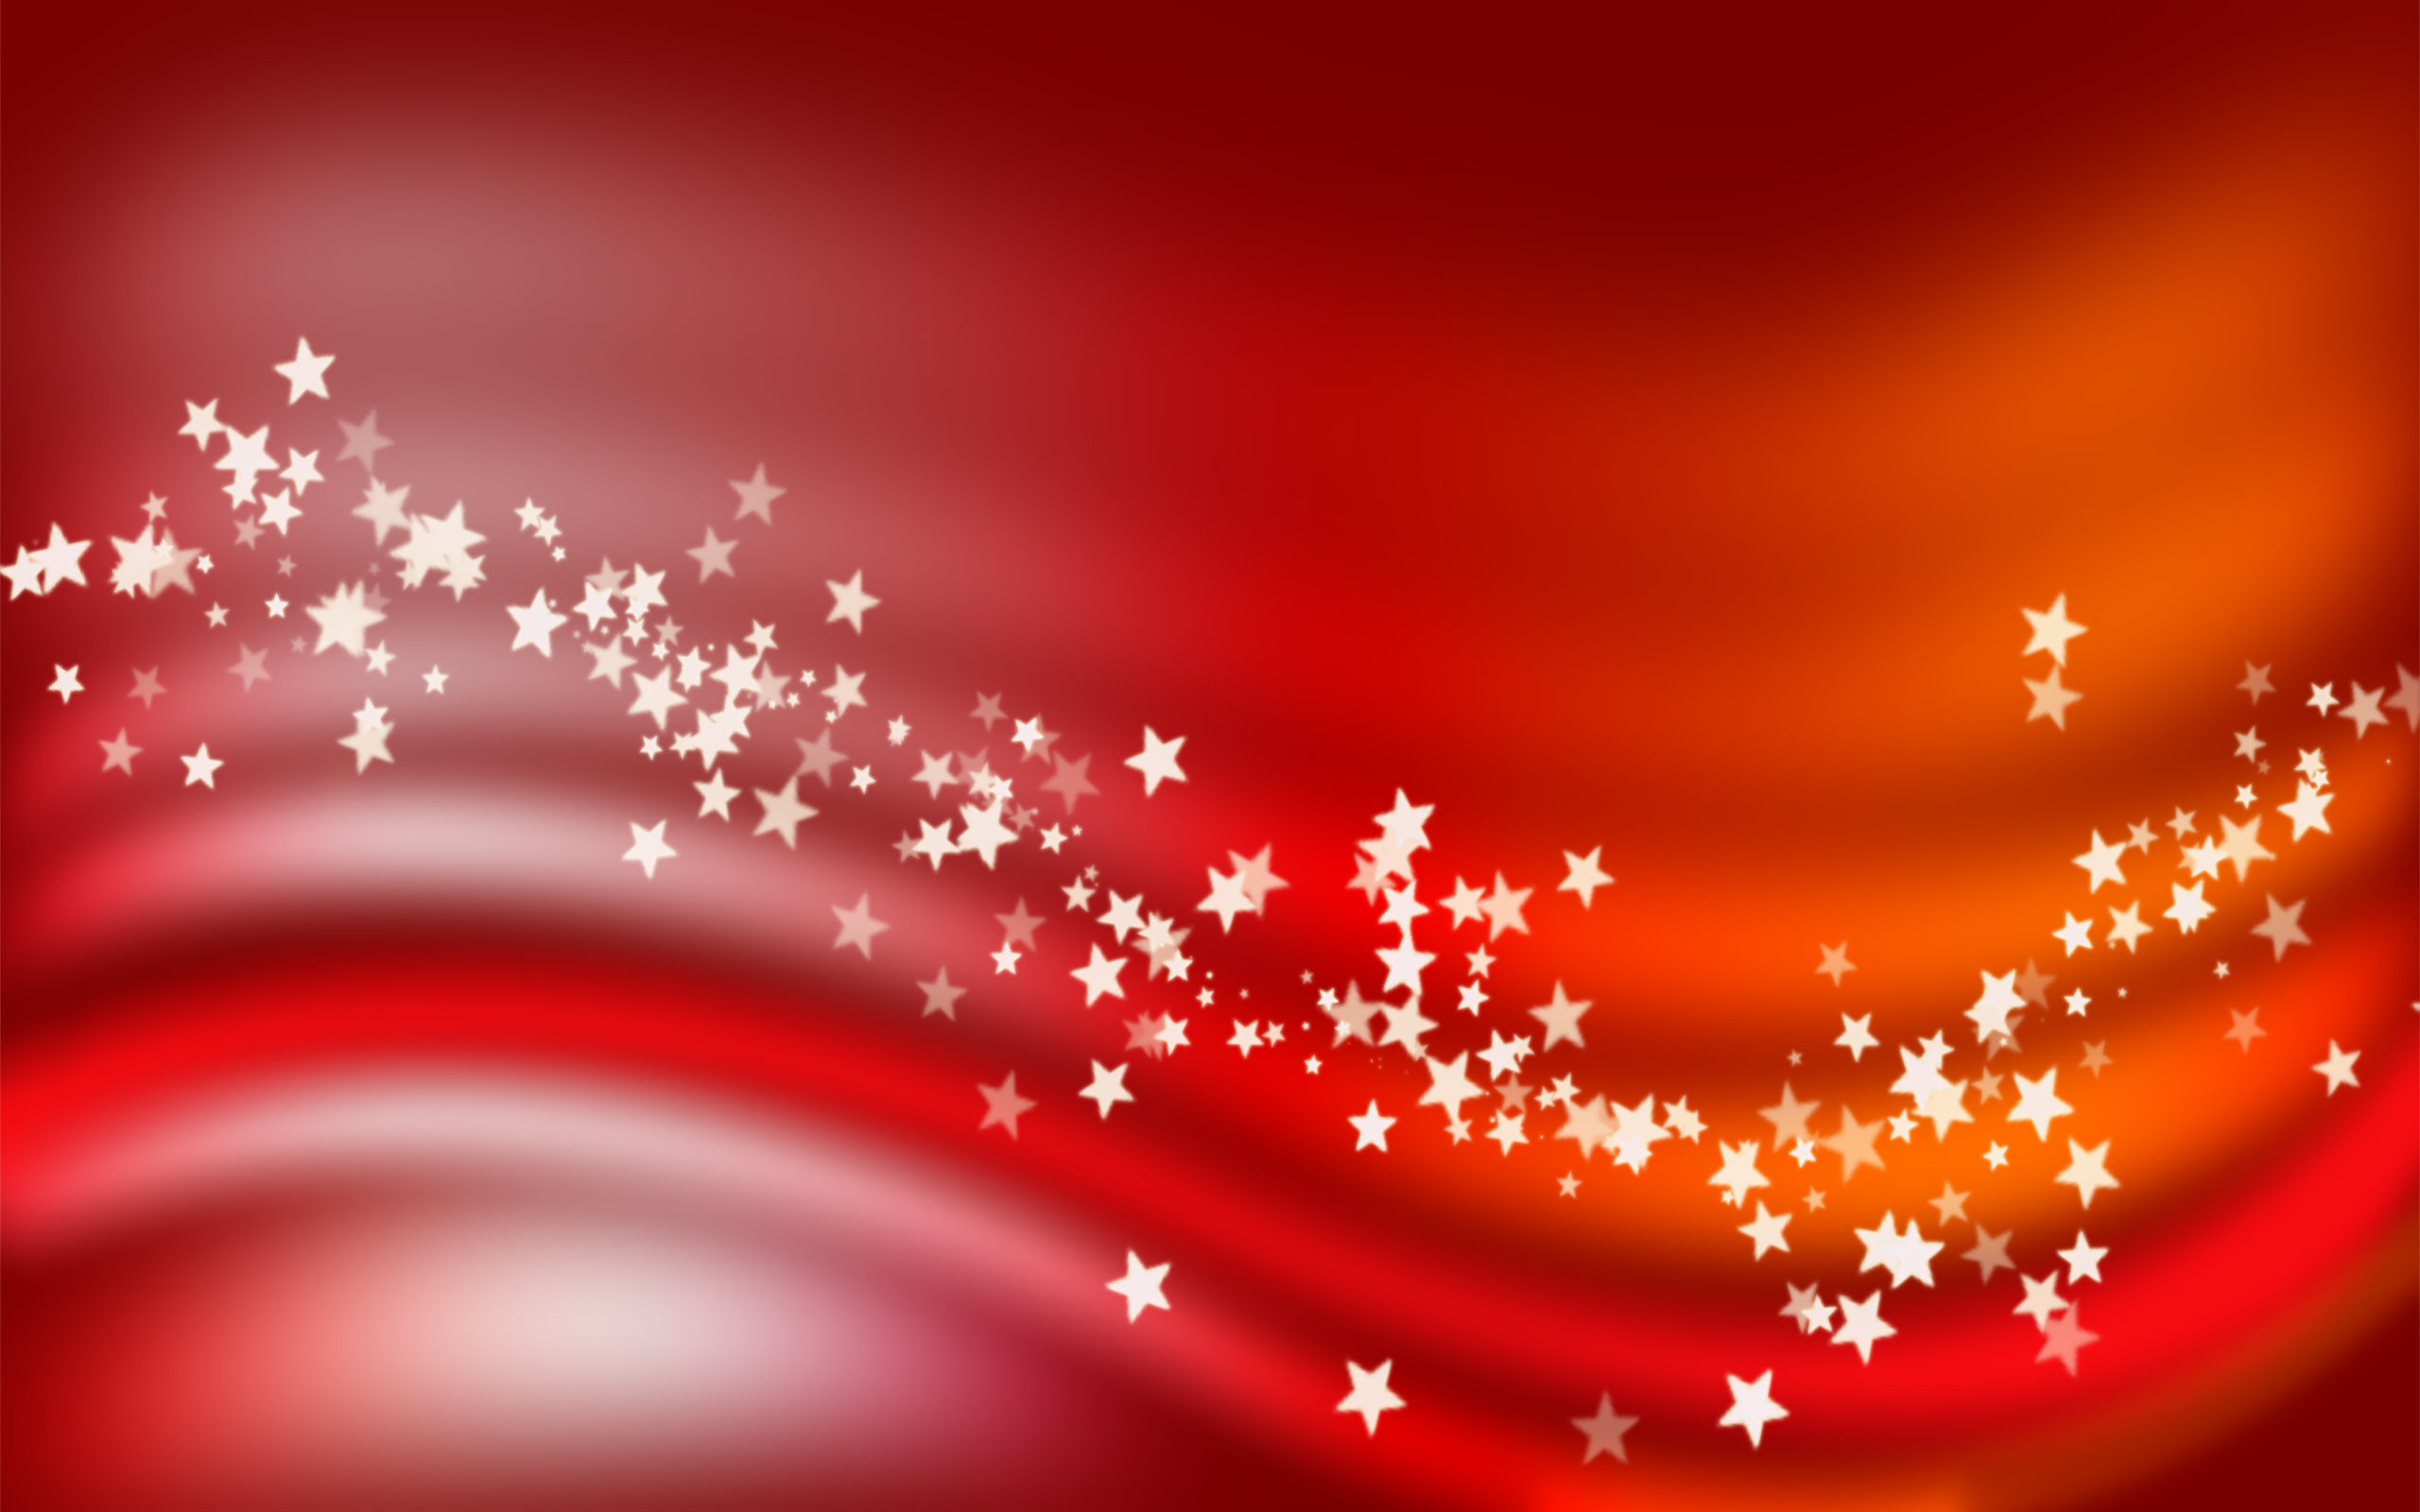 2560x1600 Red Xmas Wallpapers HD wallppers - Red Xmas Wallpapers